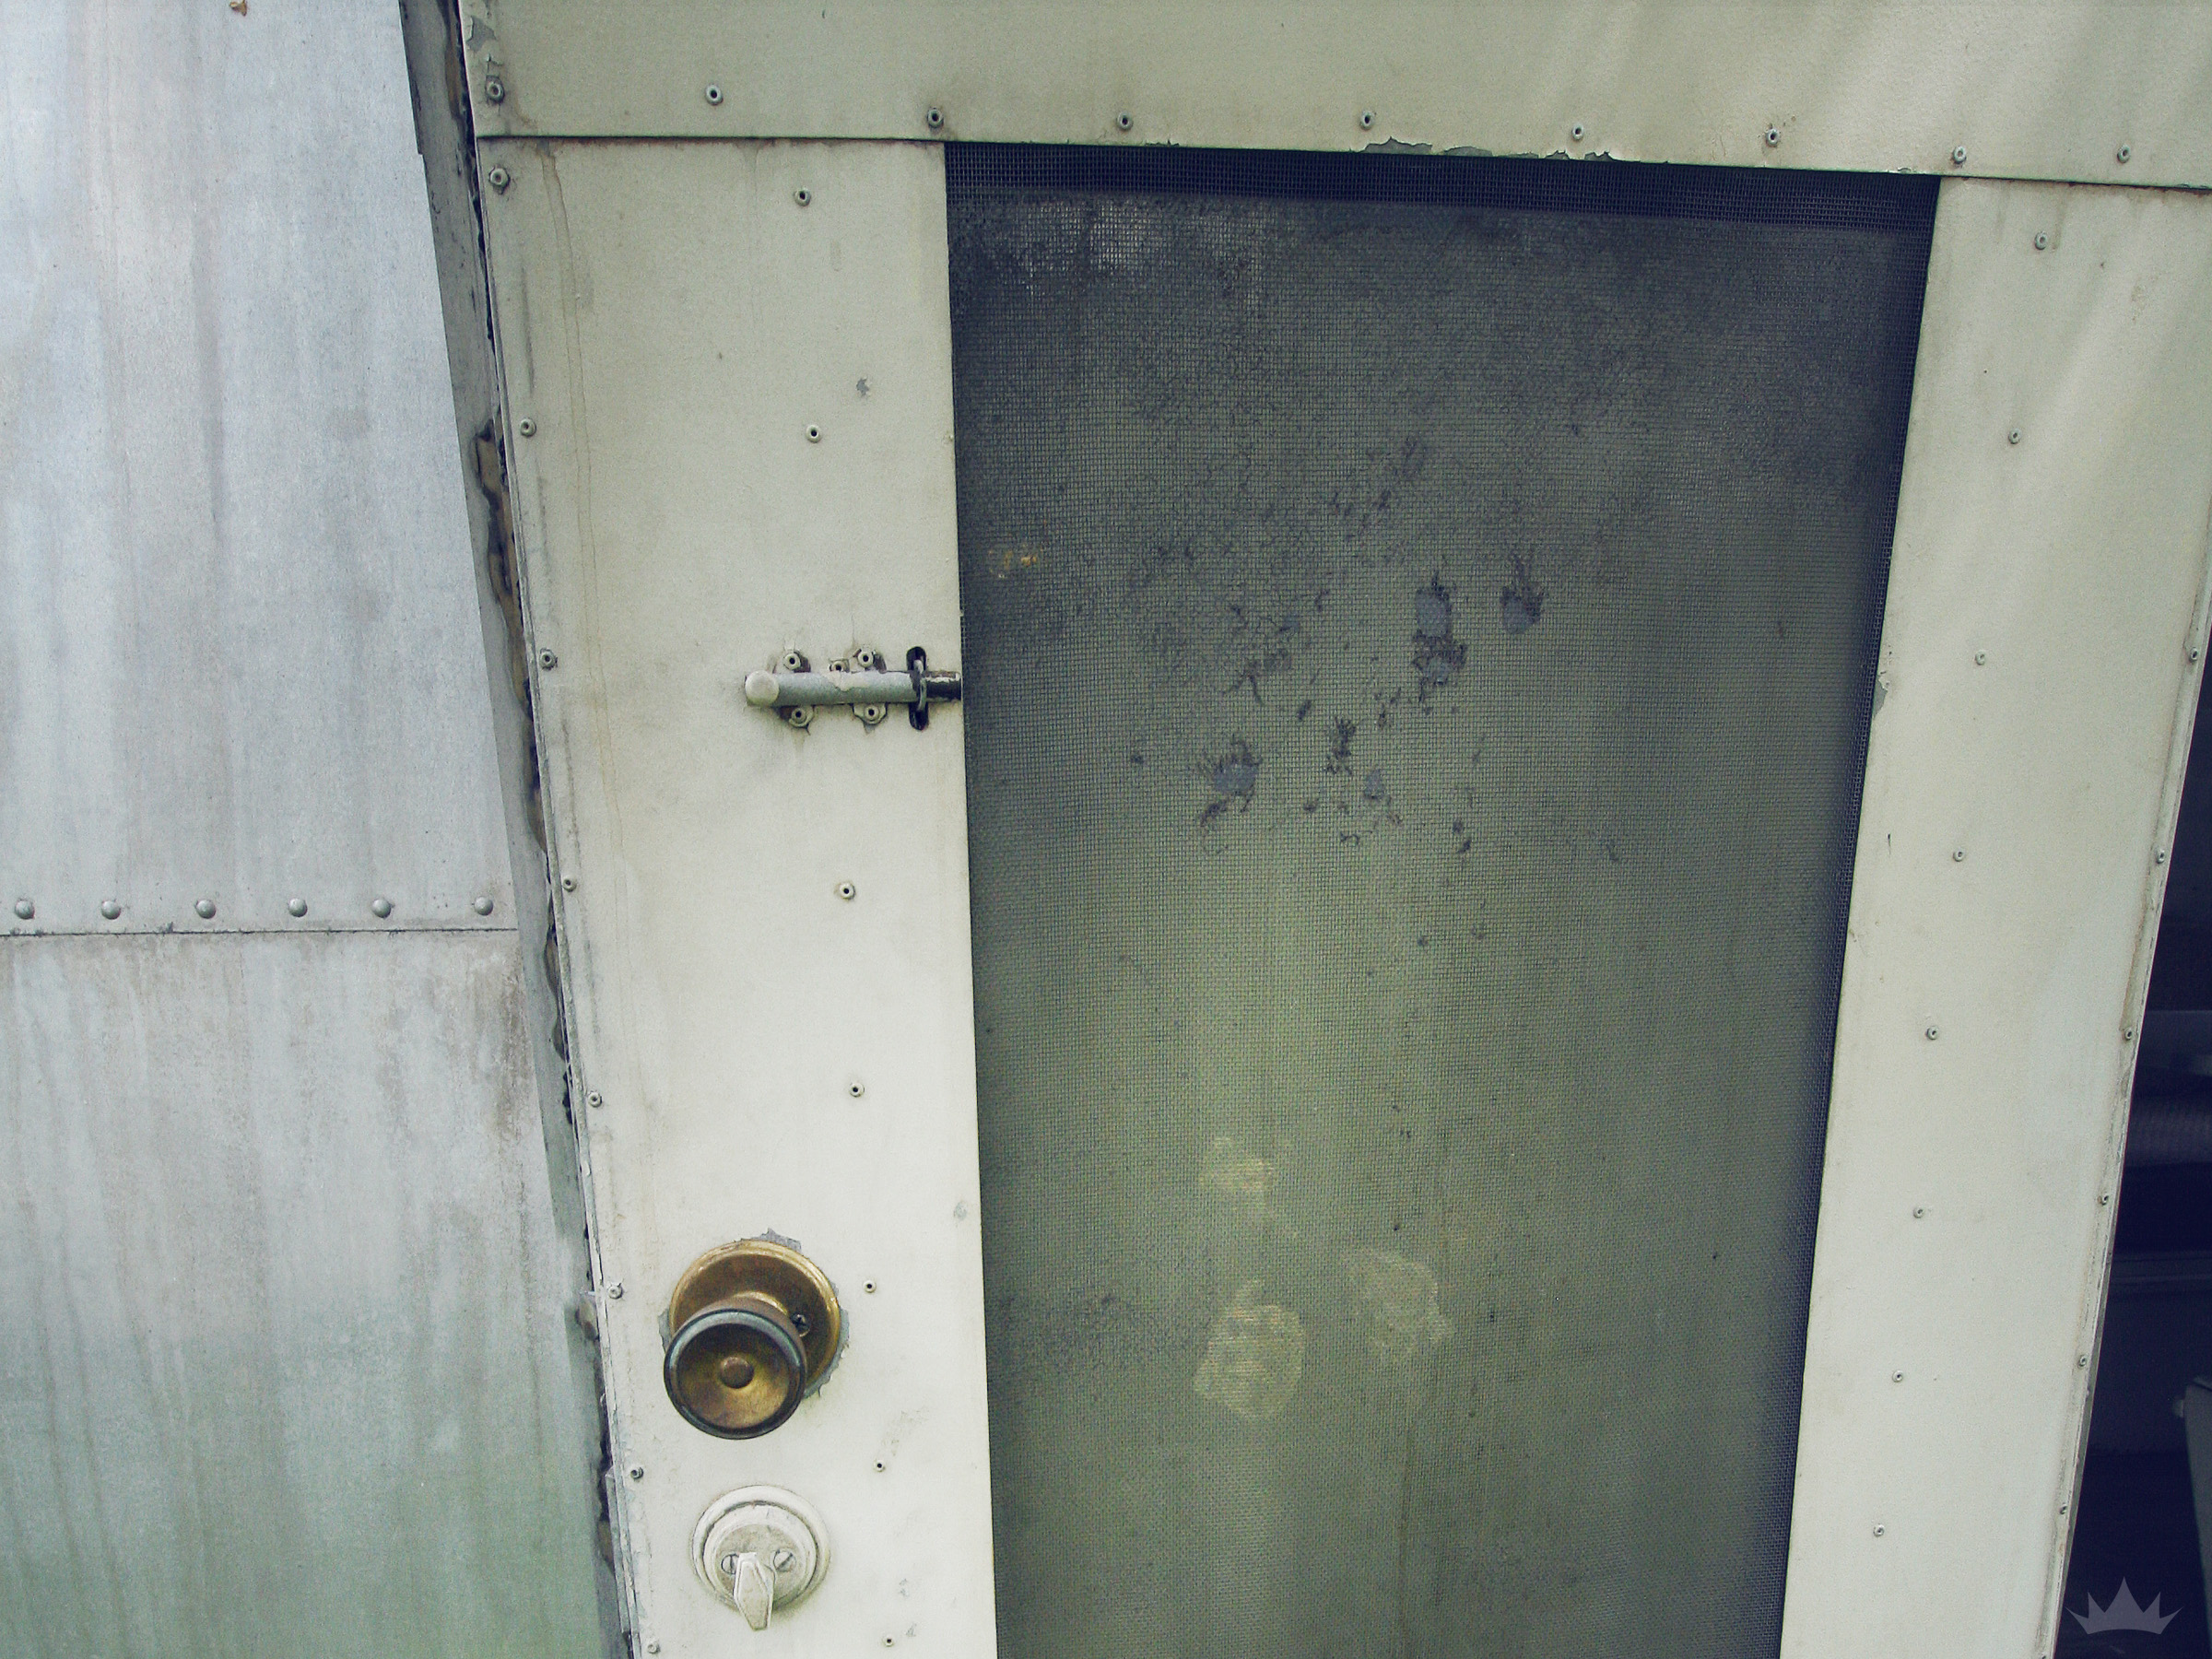 There was also 3-4 coats of paint on the door and hardware, including the original factory paint.